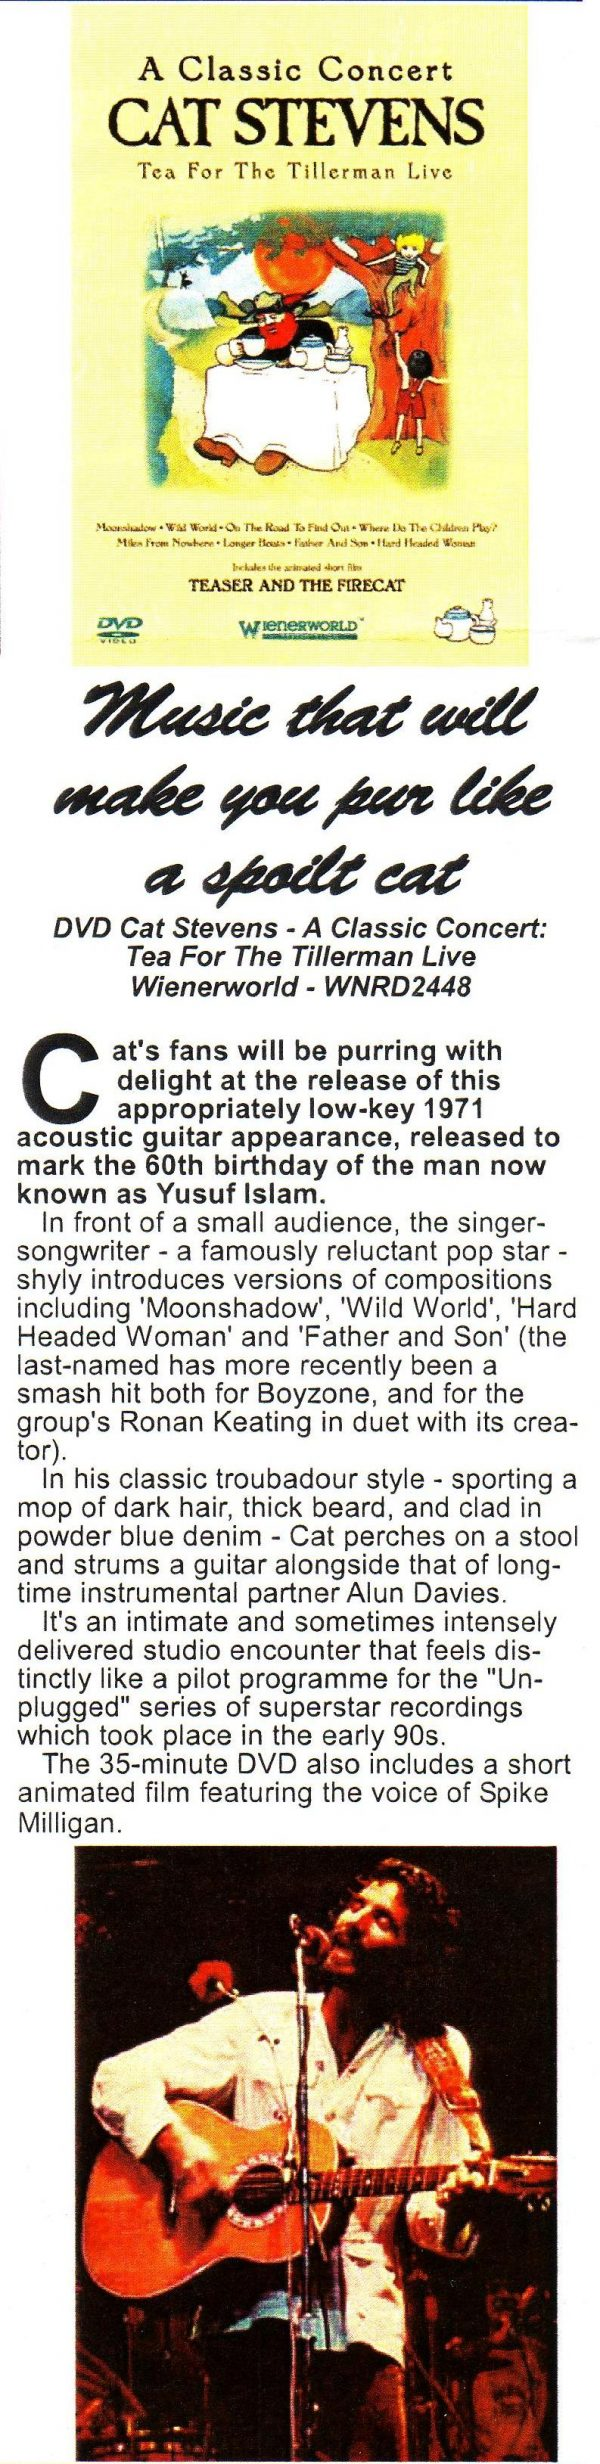 A Classic Concert: Cat Stevens – Tea For The Tillerman Live-593